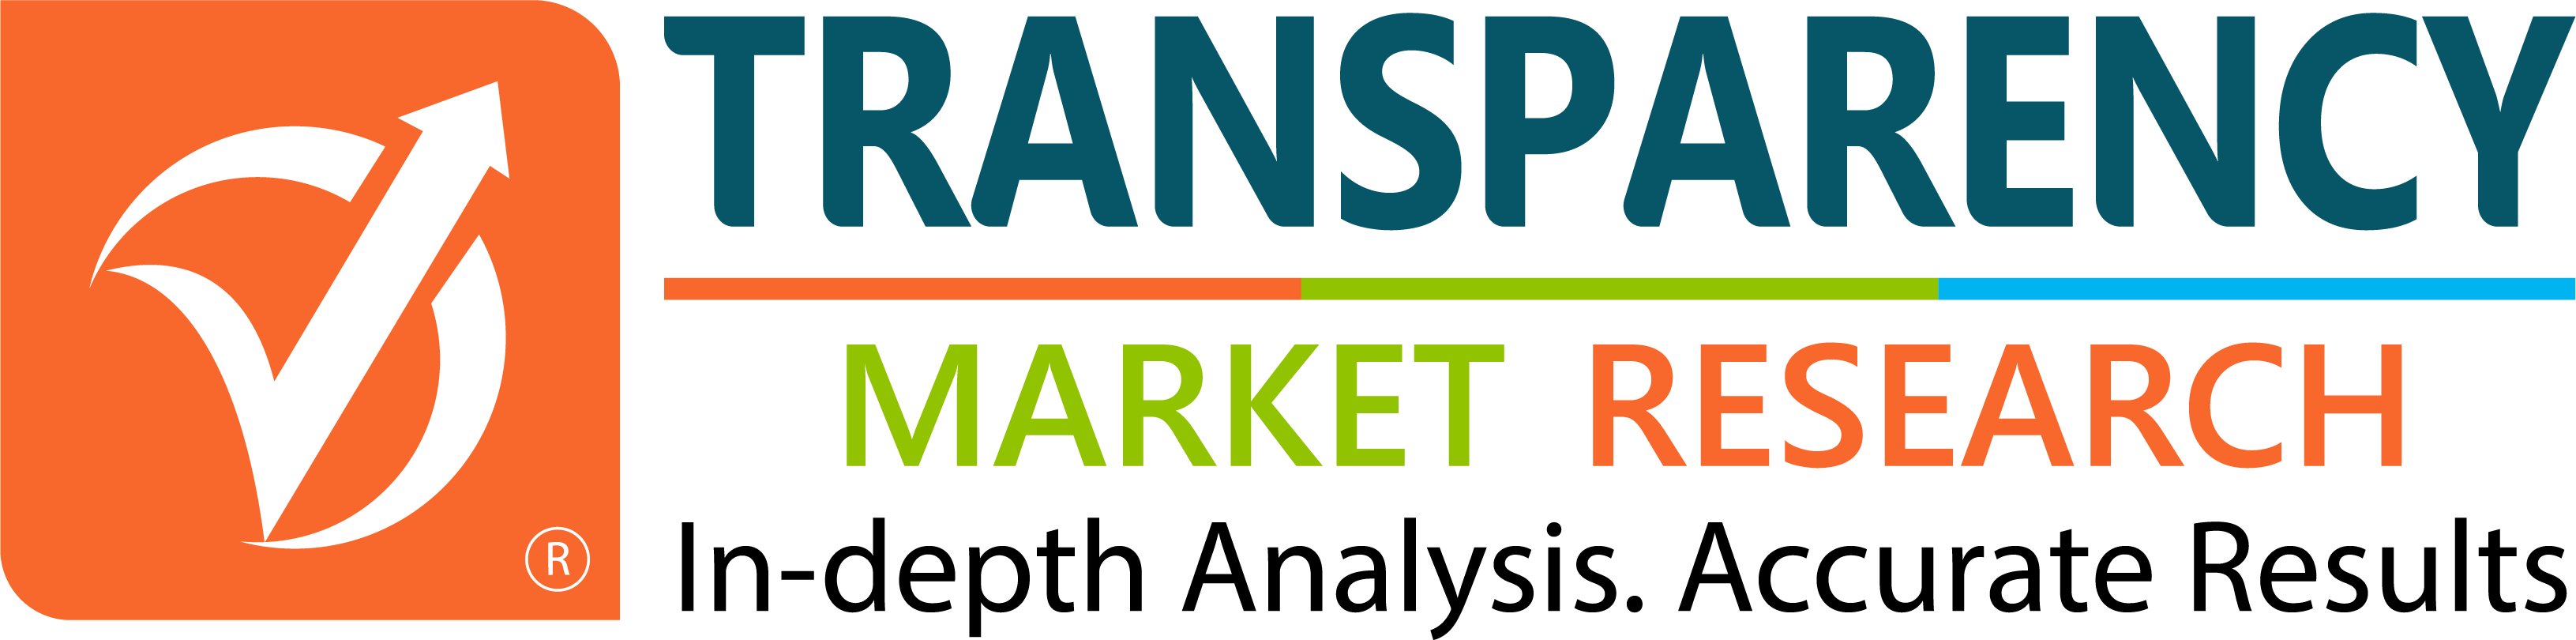 Hip Replacement Implants Market is Projected to Register a CAGR of over 3.5% During 2018-2026